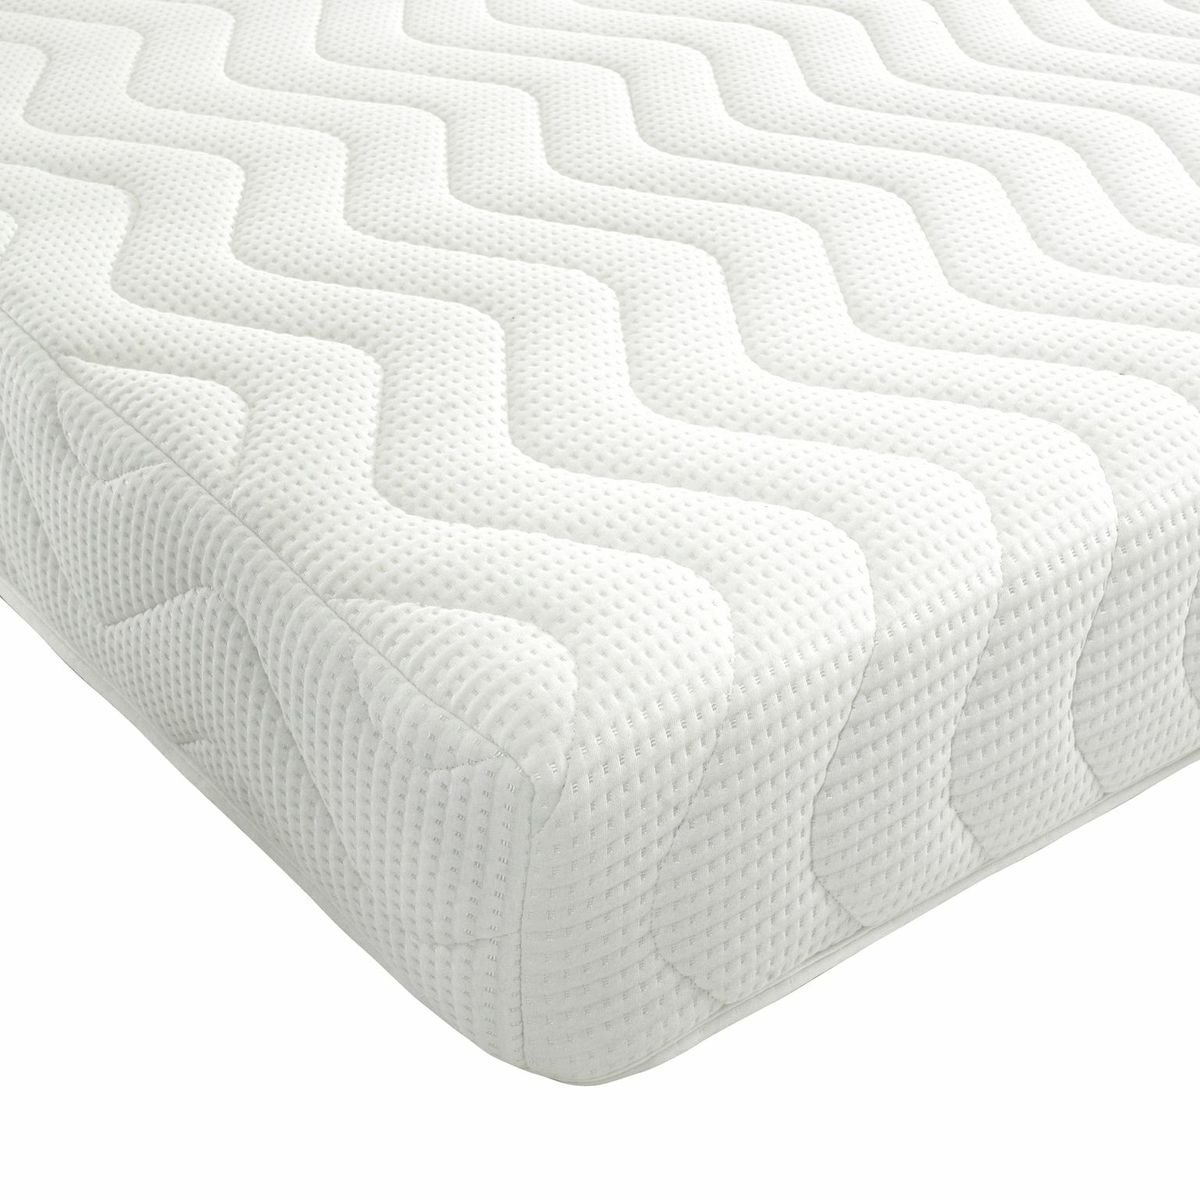 Bedzonline Memory Foam and Reflex 3 Zone Mattress with 2 Fibre Pillows Micro Quilted cool flex Cover, King size , 5ft , 150 x 200 cm       Customer review and more information